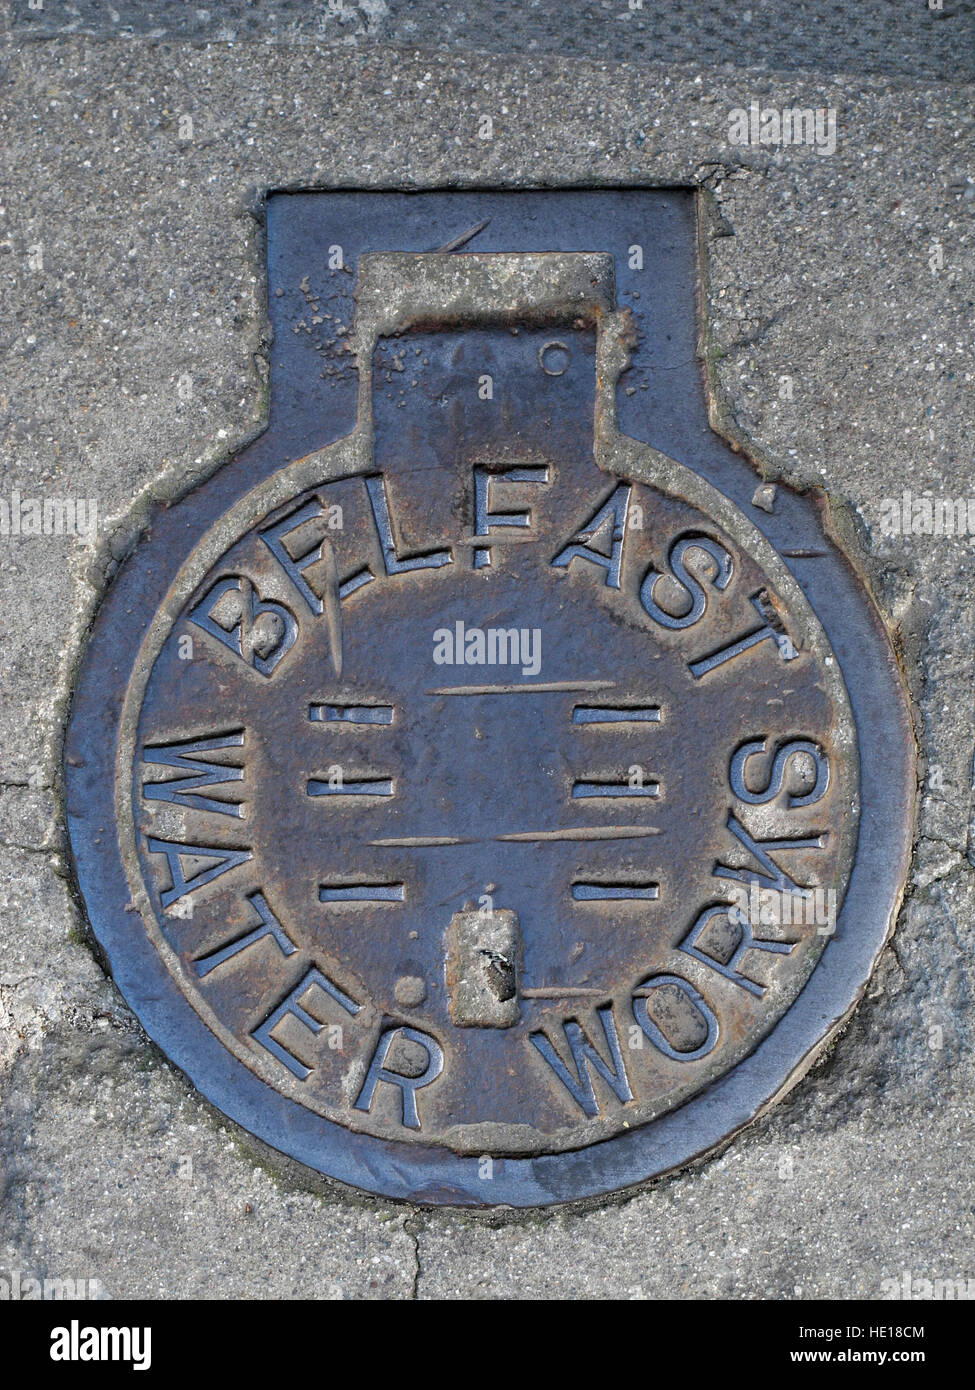 Belfast Water Works,Cast Iron,Manhole Grid,man,hole,cover,Manhole Cover,Northern Ireland,UK,grid,in,road,street,Water works,access,access cover,sewer,man,hole,cast,iron,access,iron,cast iron,metal,steel,@HotpixUK,road,street,grid,in,road,street,Water works,access,access cover,sewer,manhole,GoTonySmith,@HotpixUK,Tony,Smith,UK,GB,Great,Britain,United,Kingdom,Irish,British,Ireland,problem,with,problem with,issue with,NI,Northern,Northern Ireland,Belfast,City,Centre,Art,Artists,the,troubles,The Troubles,Good Friday Agreement,Peace,honour,painting,wall,walls,tribute,republicanism,Fight,Justice,West,Beal,feirste,martyrs,social,tour,tourism,tourists,urban,six,counties,6,backdrop,county,Antrim,Buy Pictures of,Buy Images Of,Images of,Stock Images,Tony Smith,United Kingdom,Great Britain,British Isles